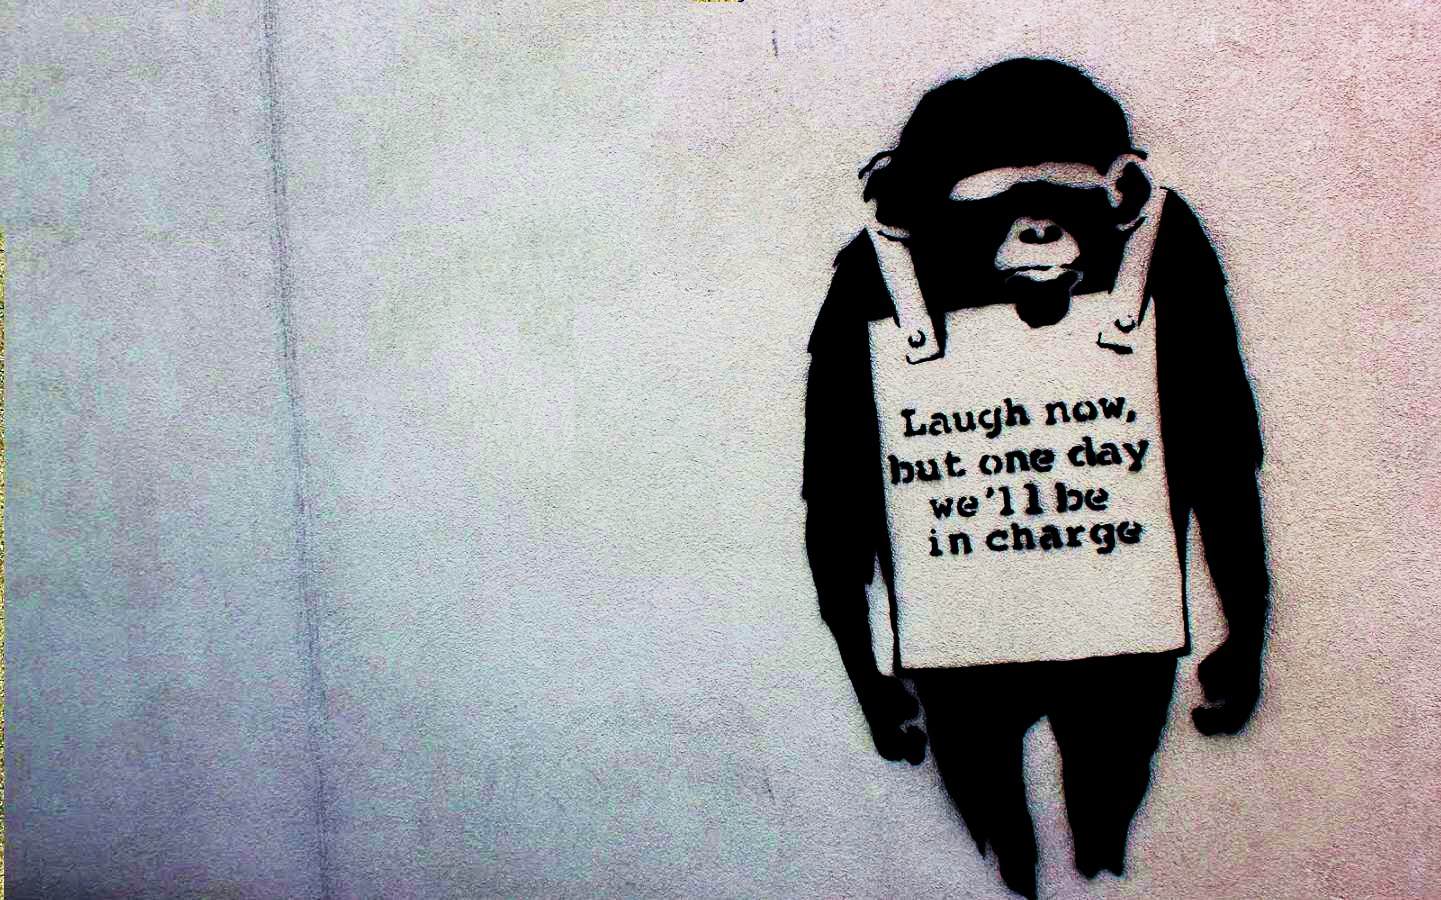 http://lounge.obviousmag.org/isso_nao_e_um_blog/banksy-ill-be-in-charge.jpg